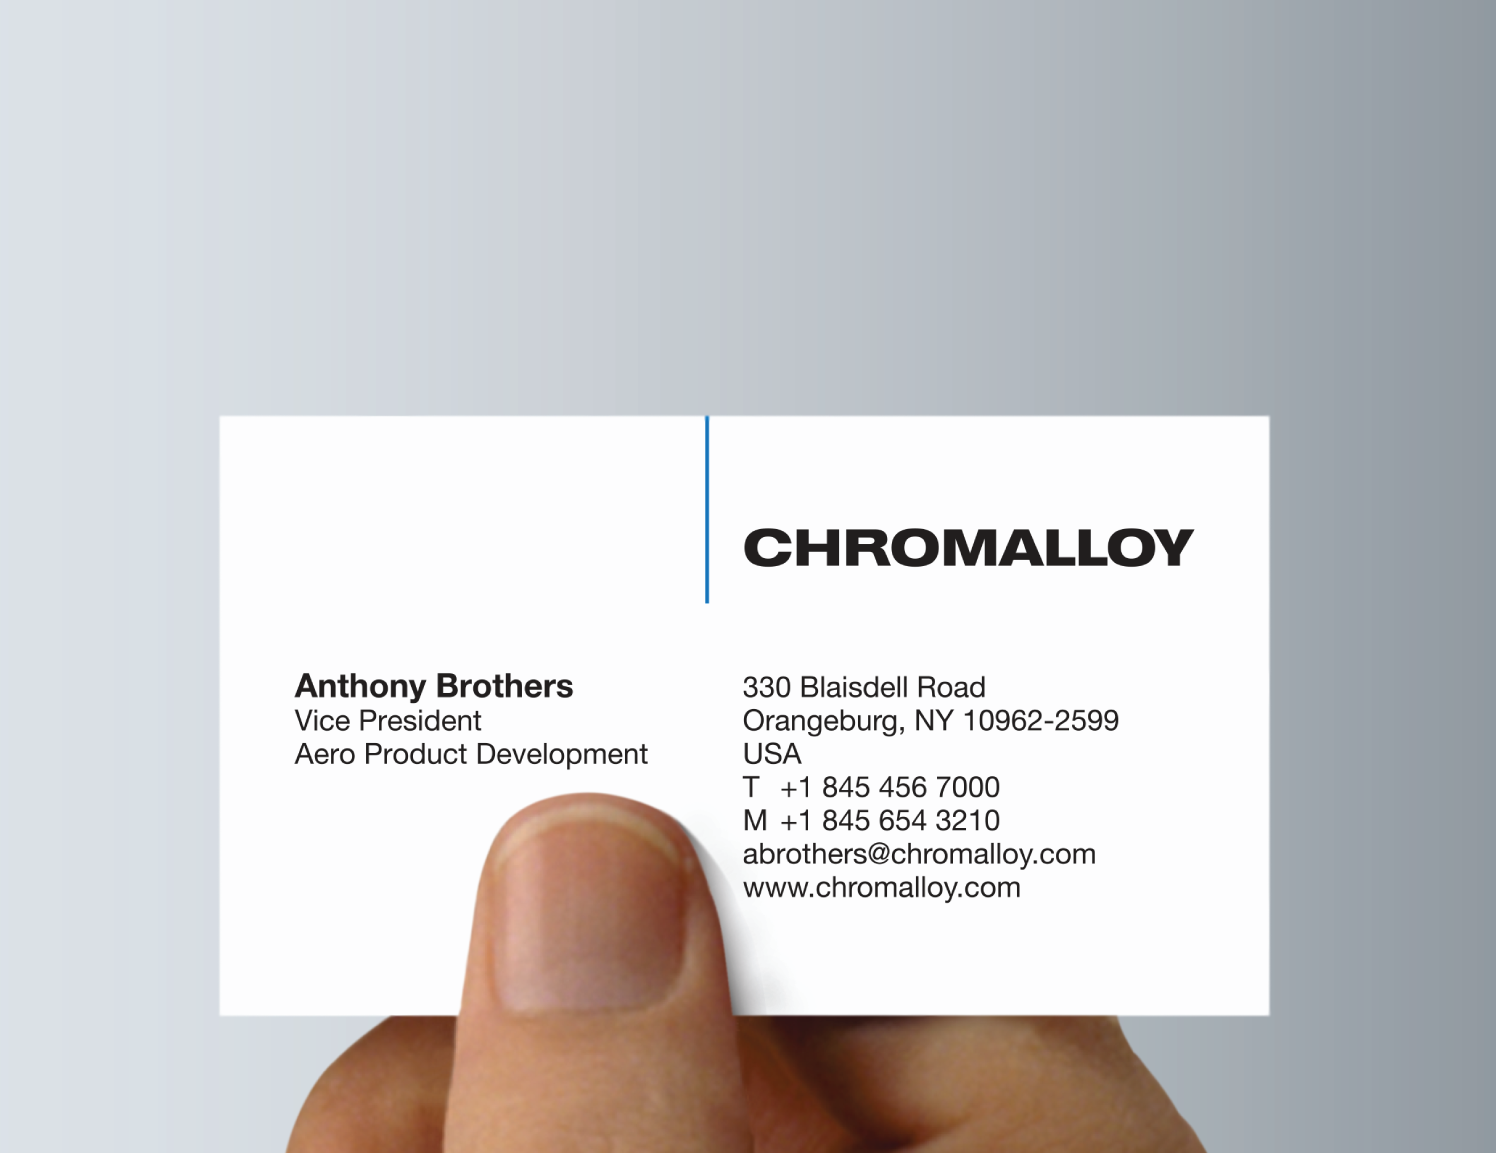 chromalloy logo example